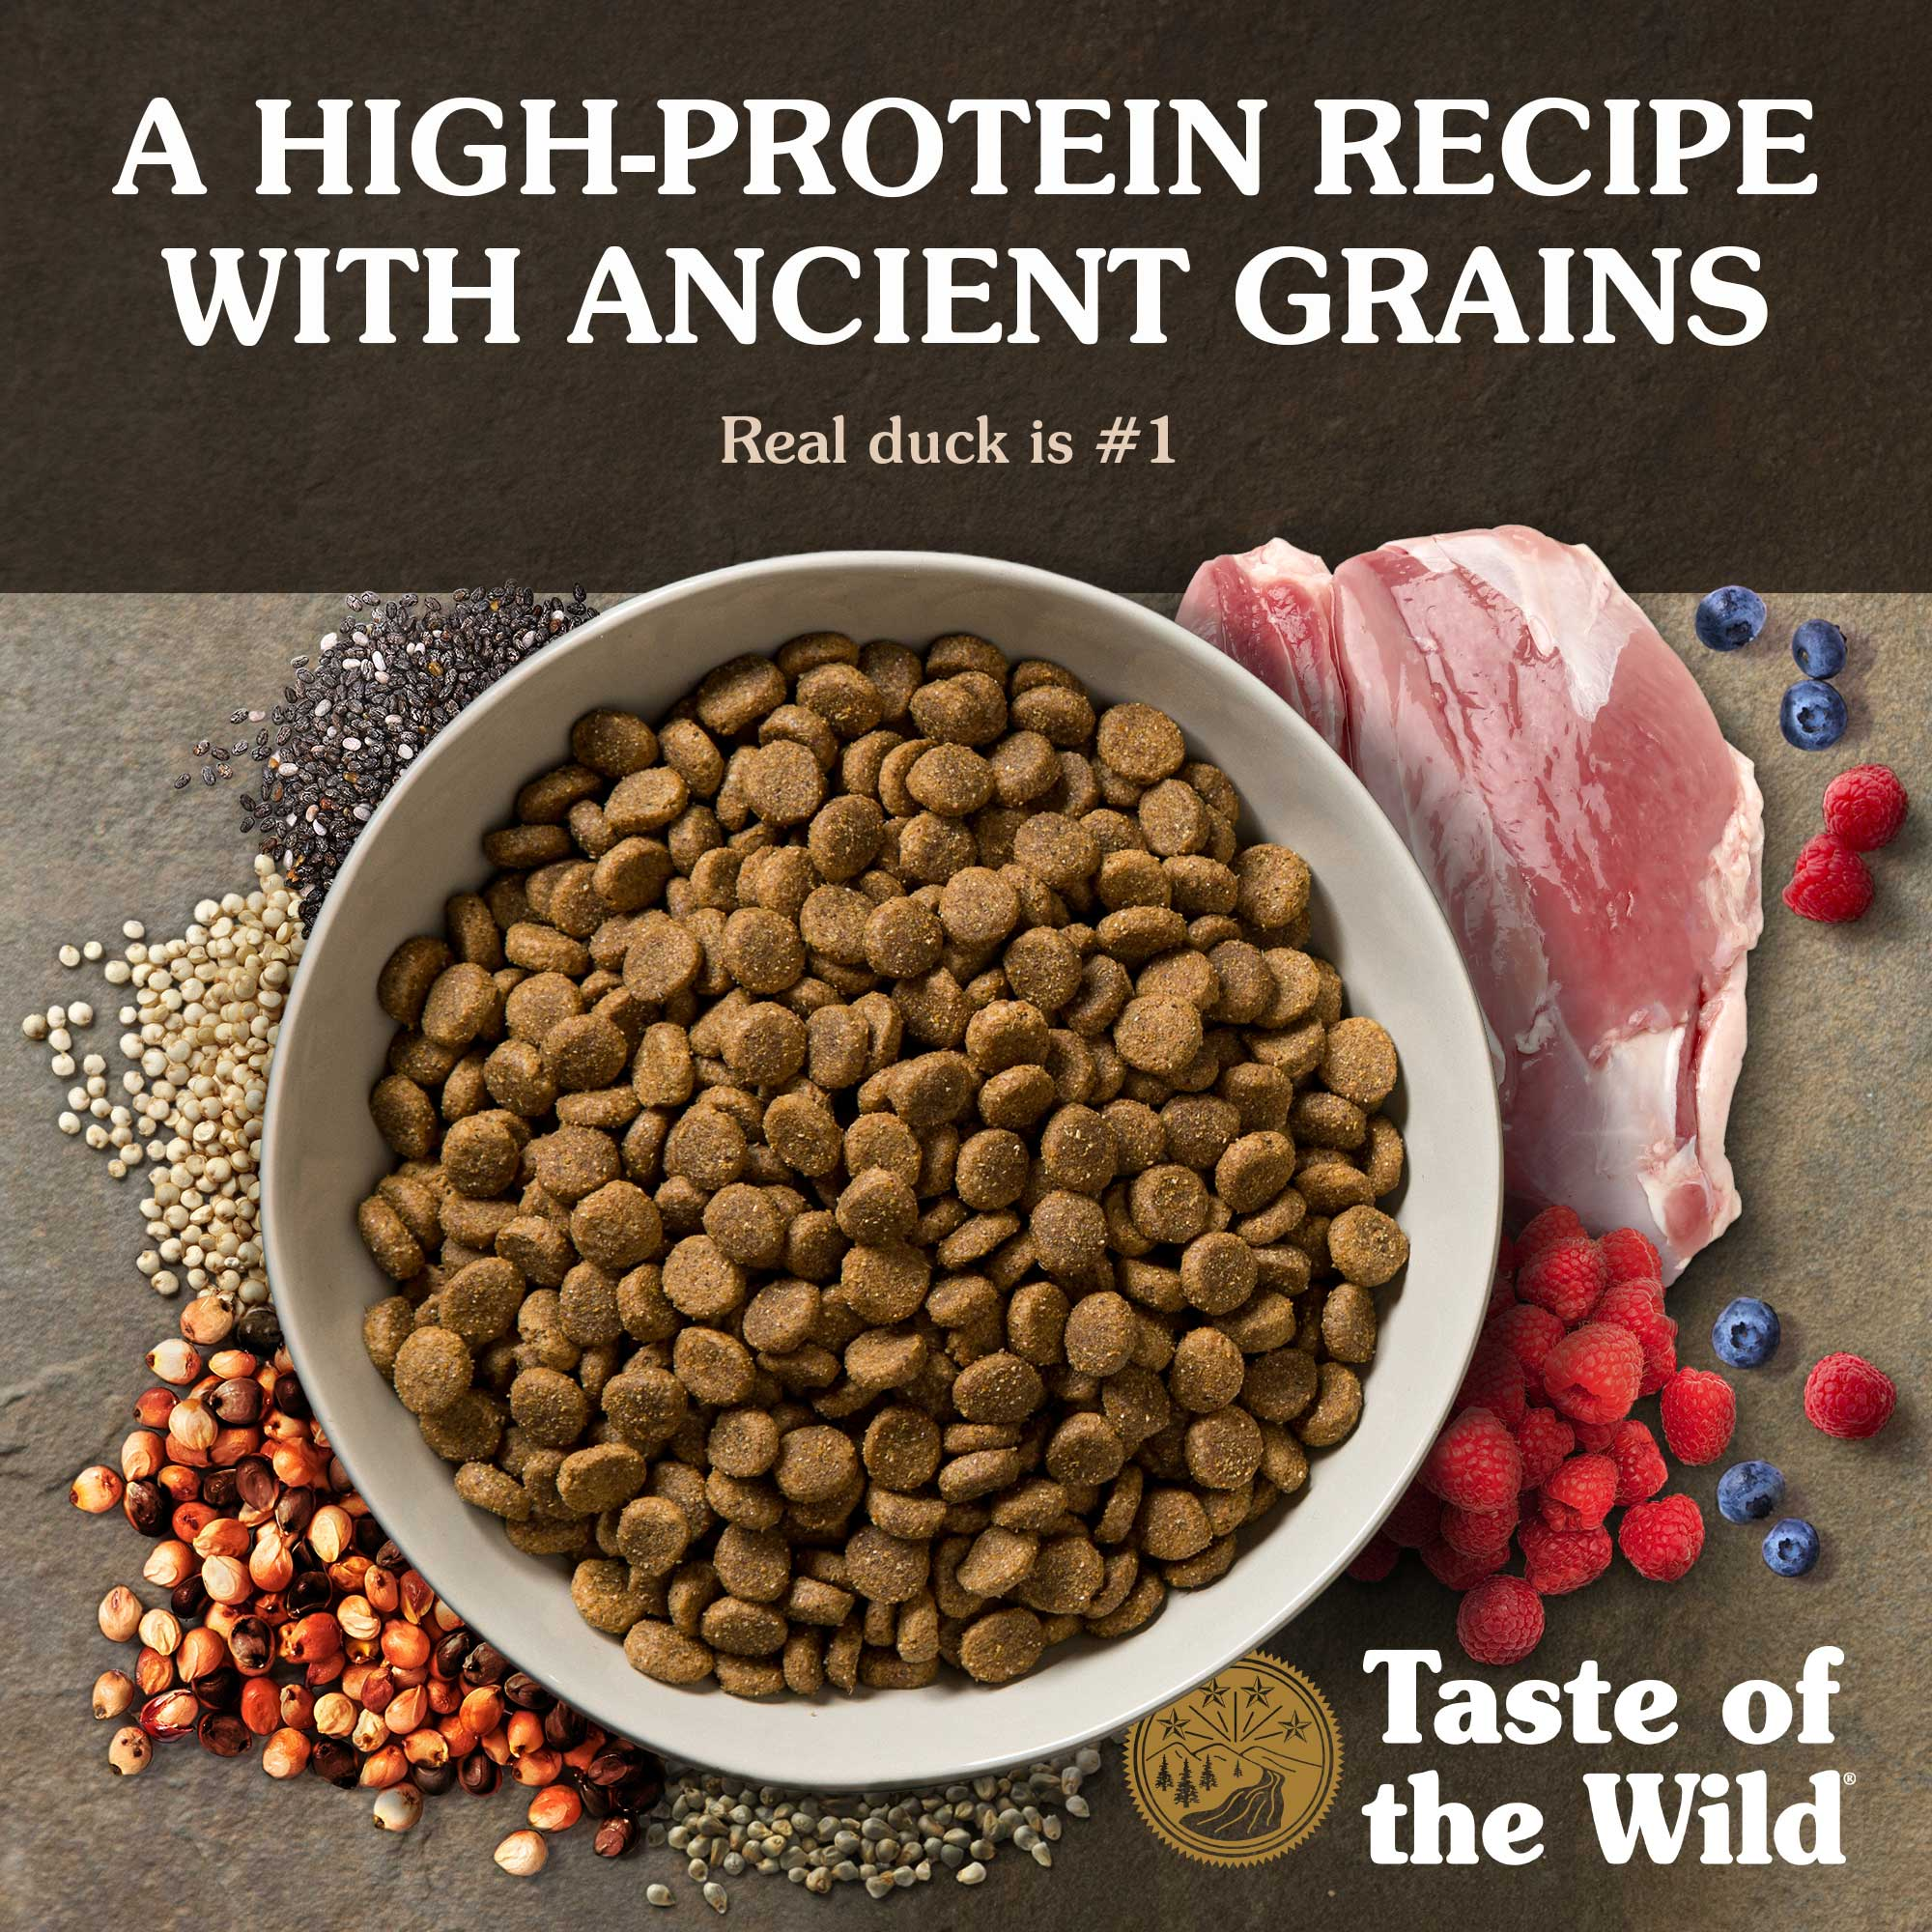 A high-protein recipe with ancient grains. Real duck is #1.